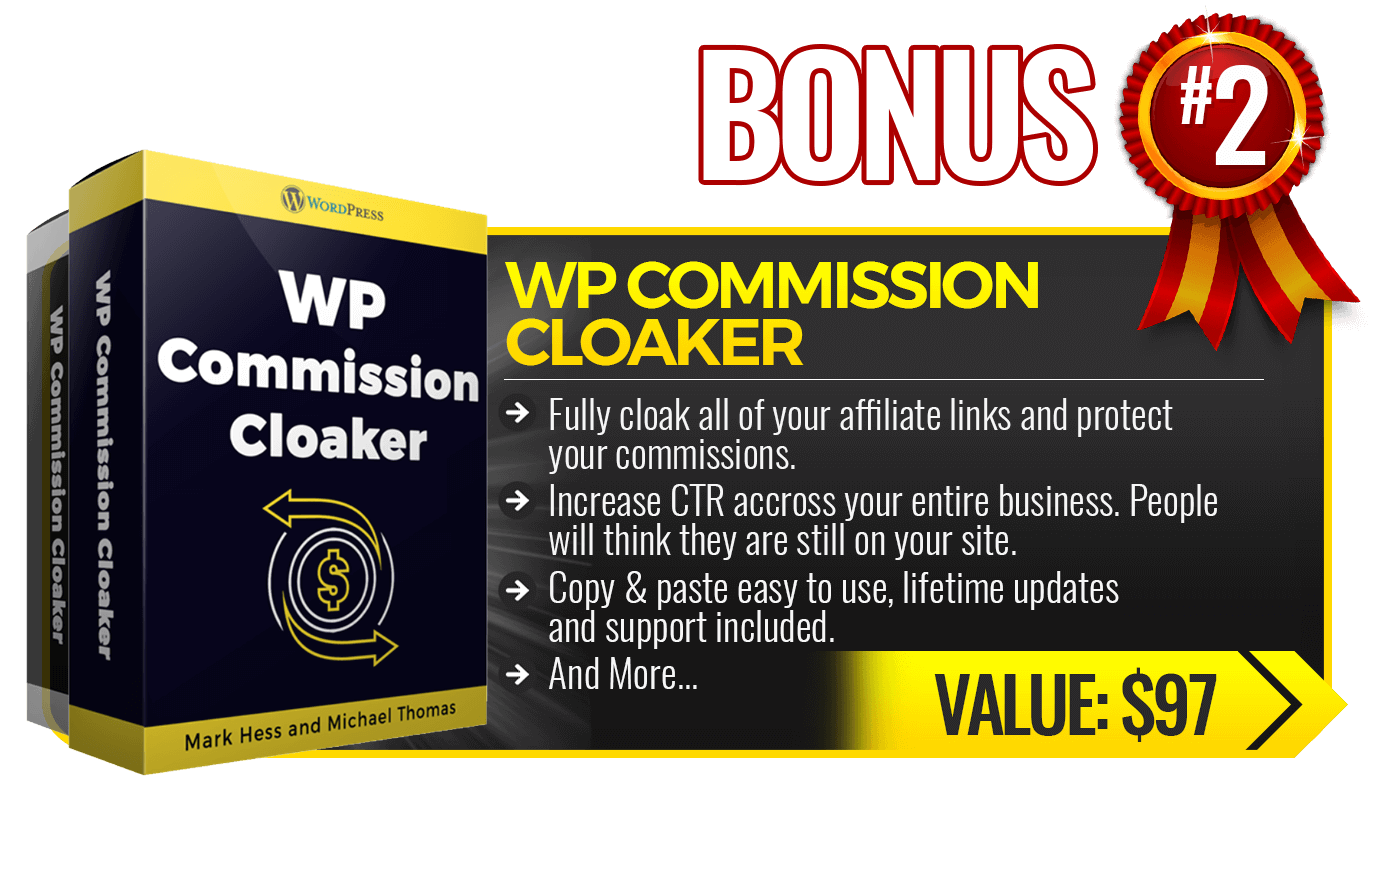 2. WP Commission Cloaker